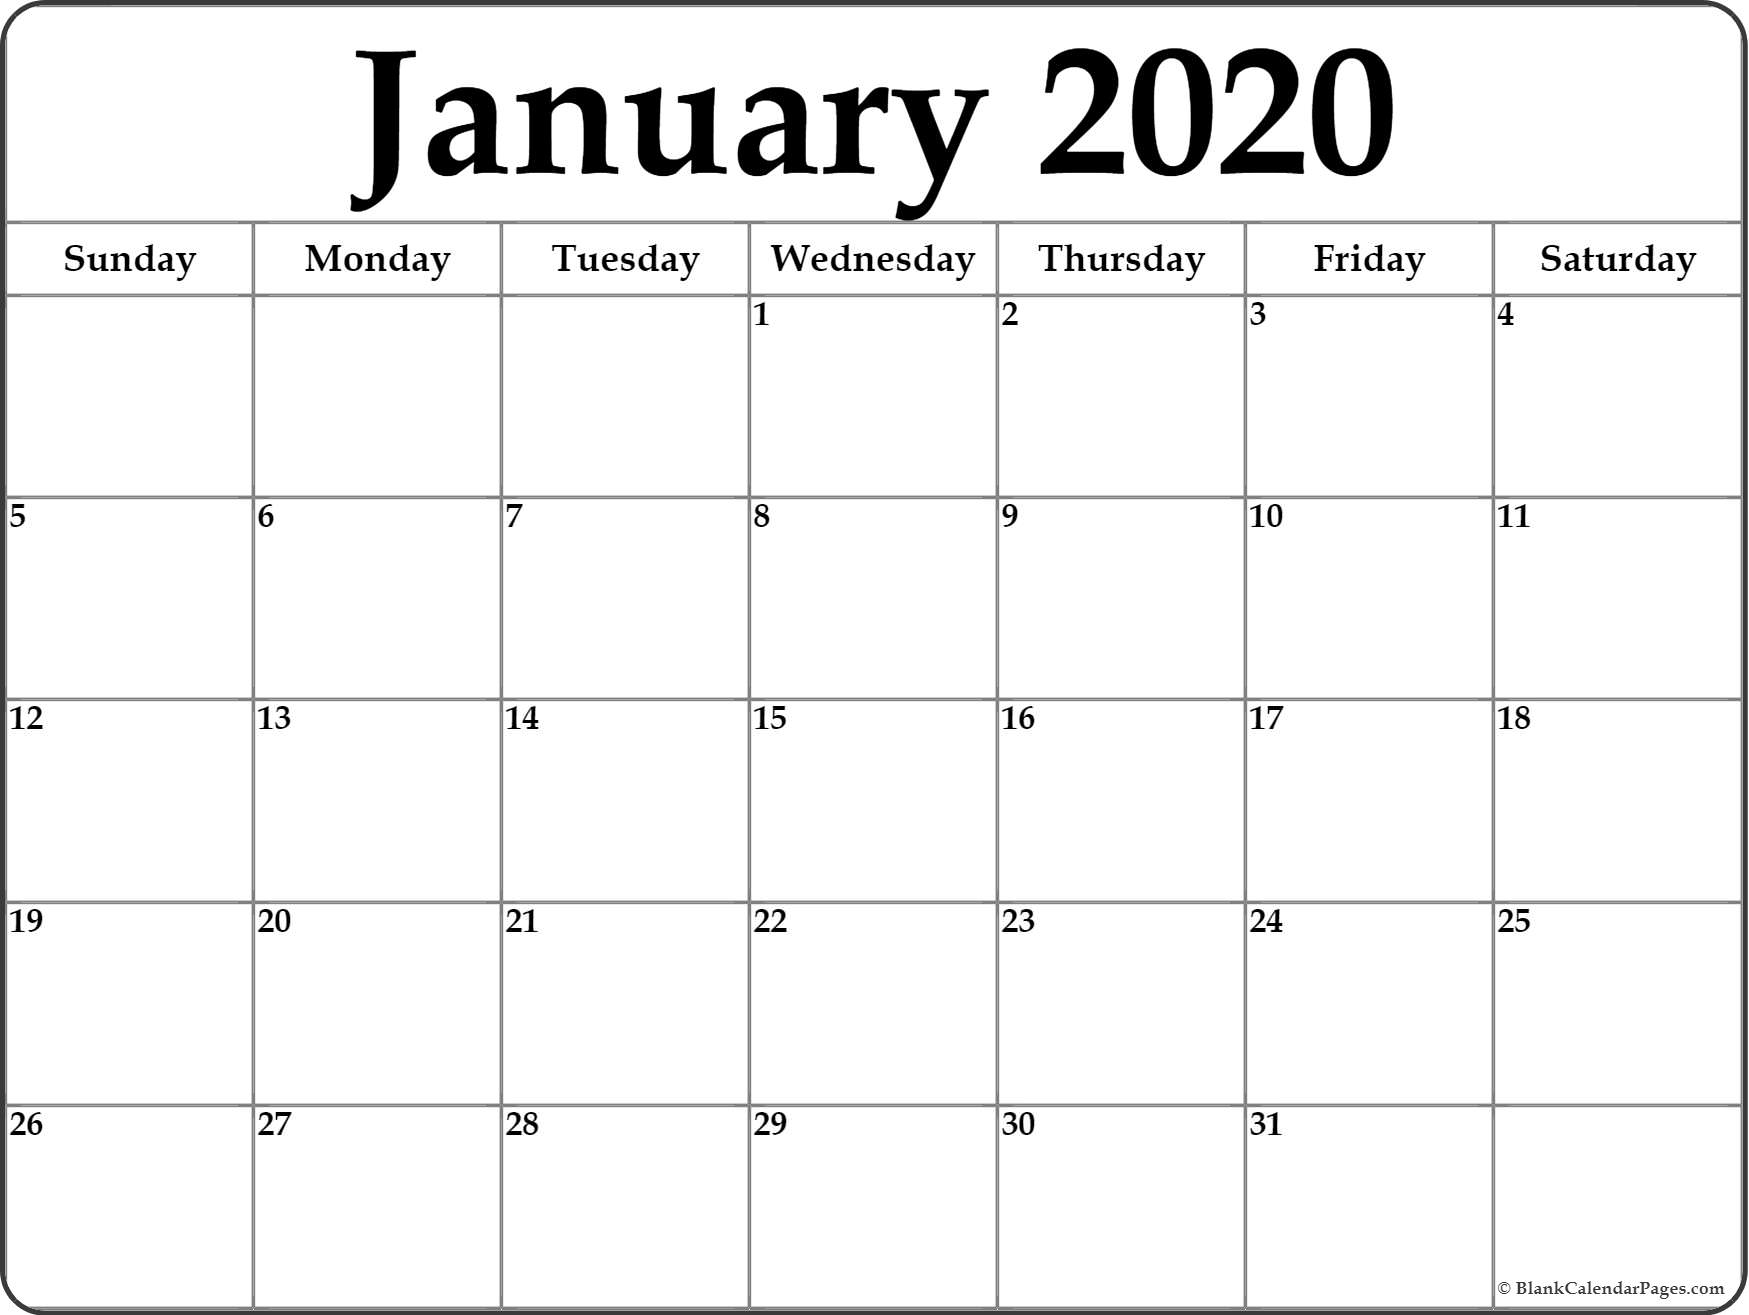 January Monthly Calendar 2020  Bolan.horizonconsulting.co with January 2020 Calendar Blank